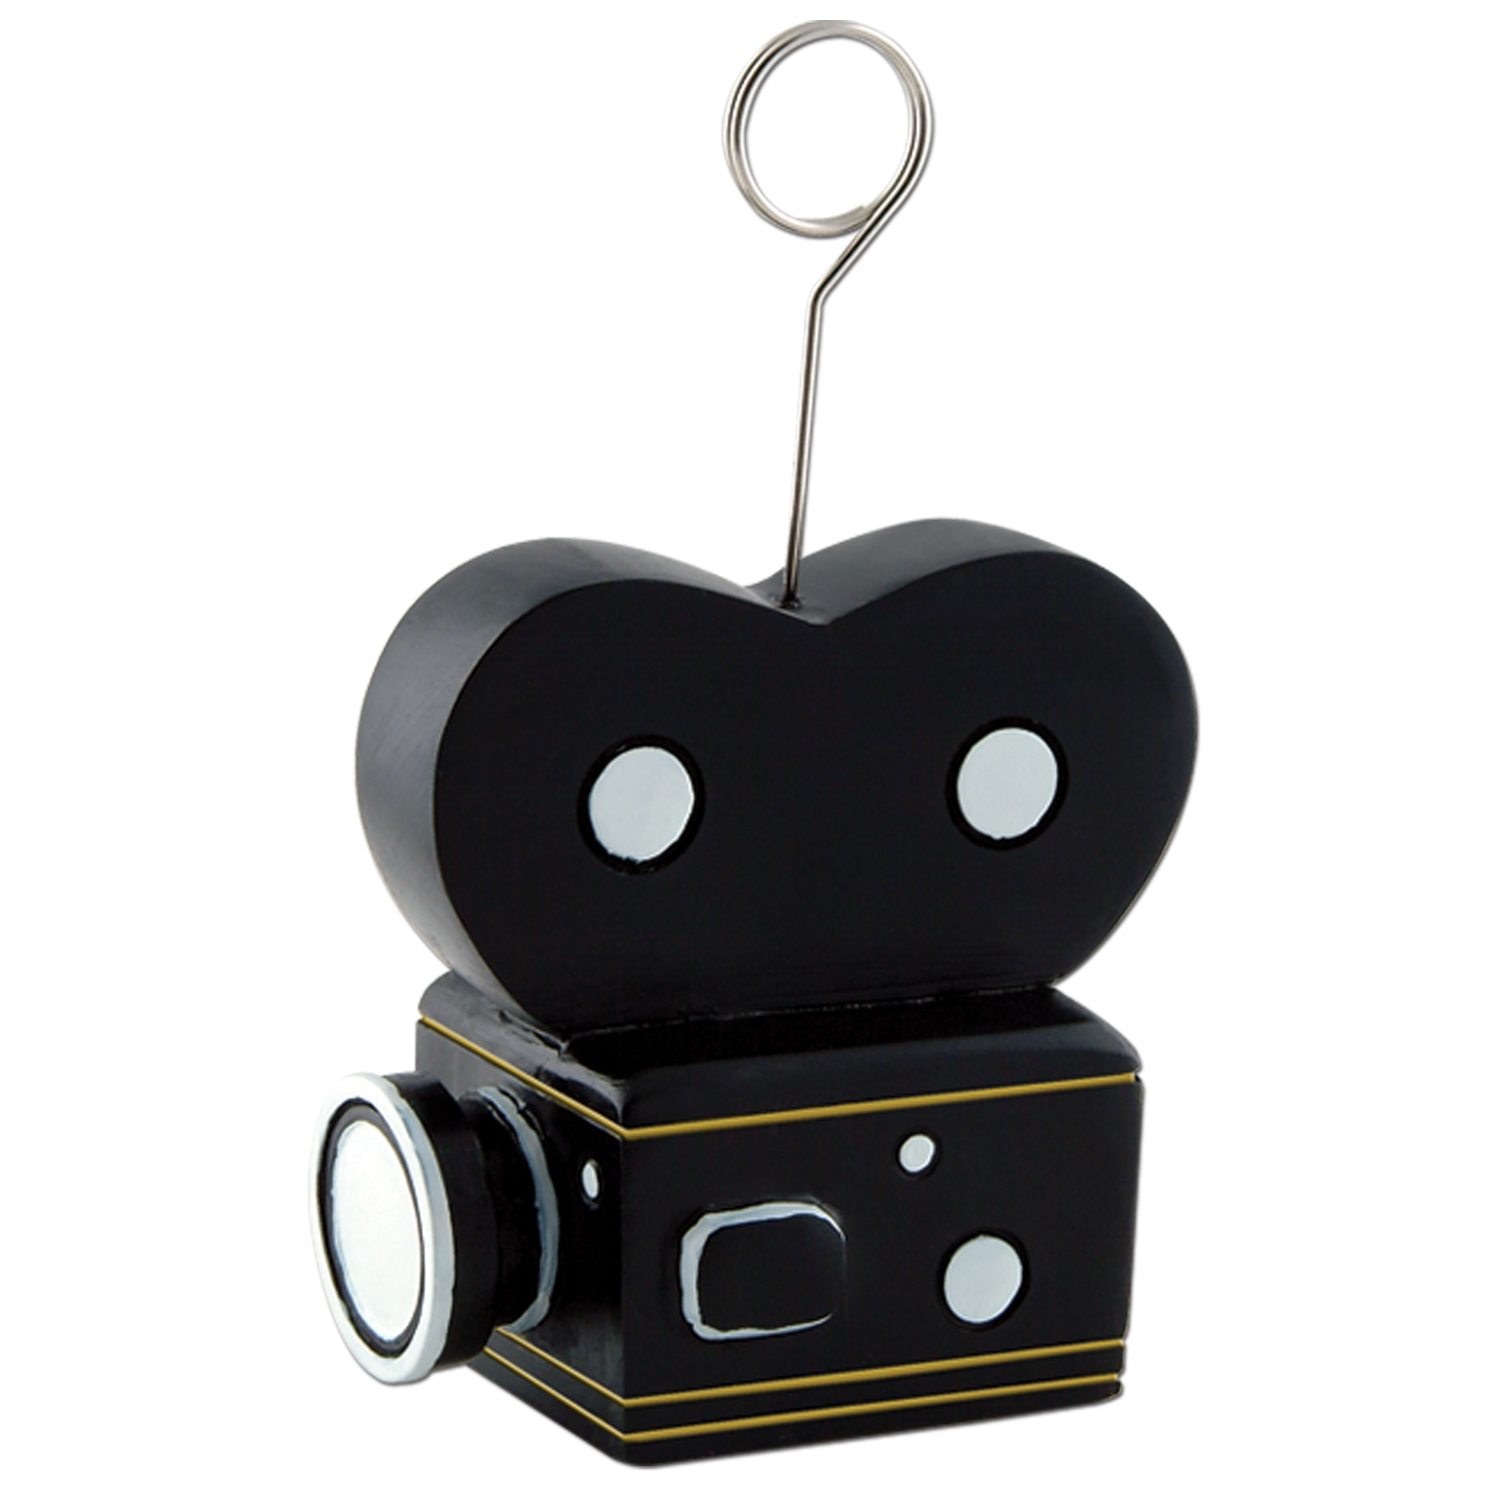 6oz Movie Camera Photo/balloon Holder (Pack of 6) Movie Camera, Photo Holder, Balloon Holder, Viewing Party, Hollywood themed event, Centerpiece, Party Favor, Balloons, Menu, Appetizer, Drink Specials, Wholesale party supplies, Inexpensive party favors, Cheap, Bulk